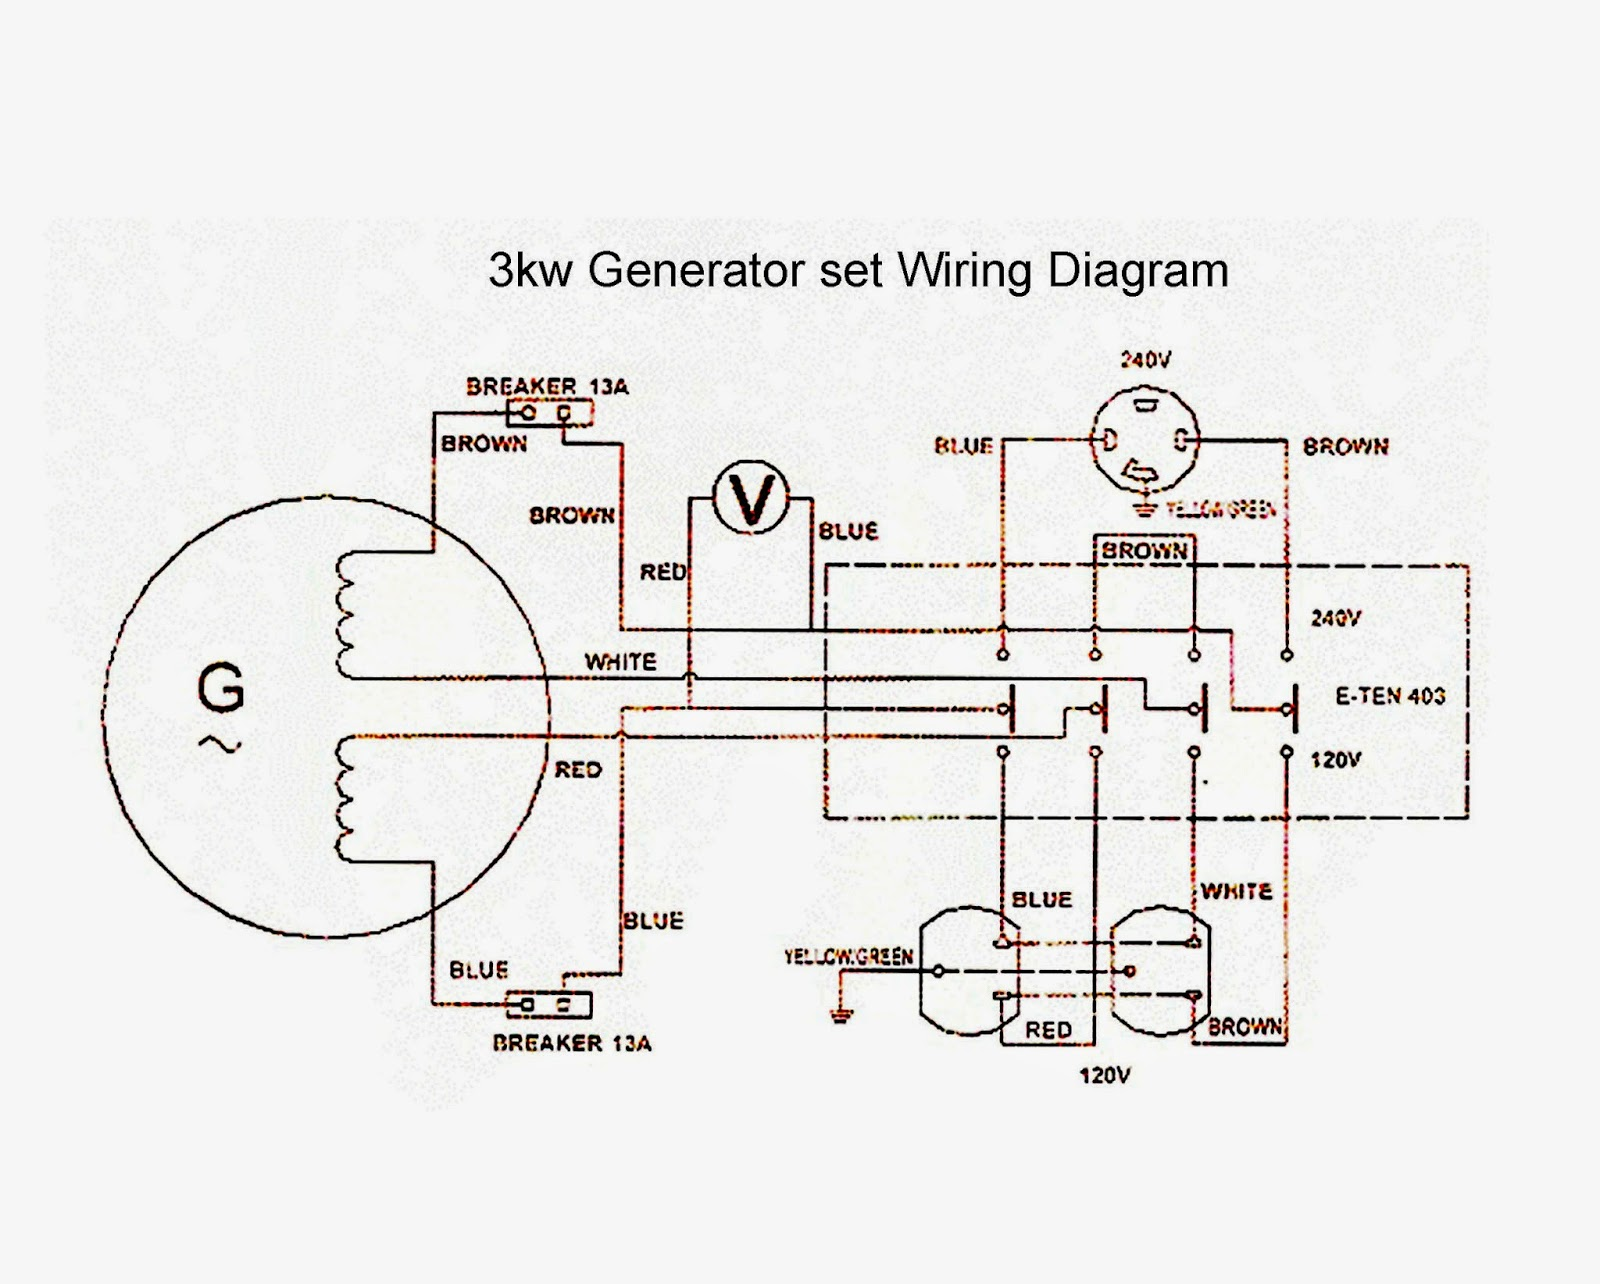 ignition switch wiring diagram generator ignition wiring switch wiring diagram generator 3000w gensetswiringdiagram 1